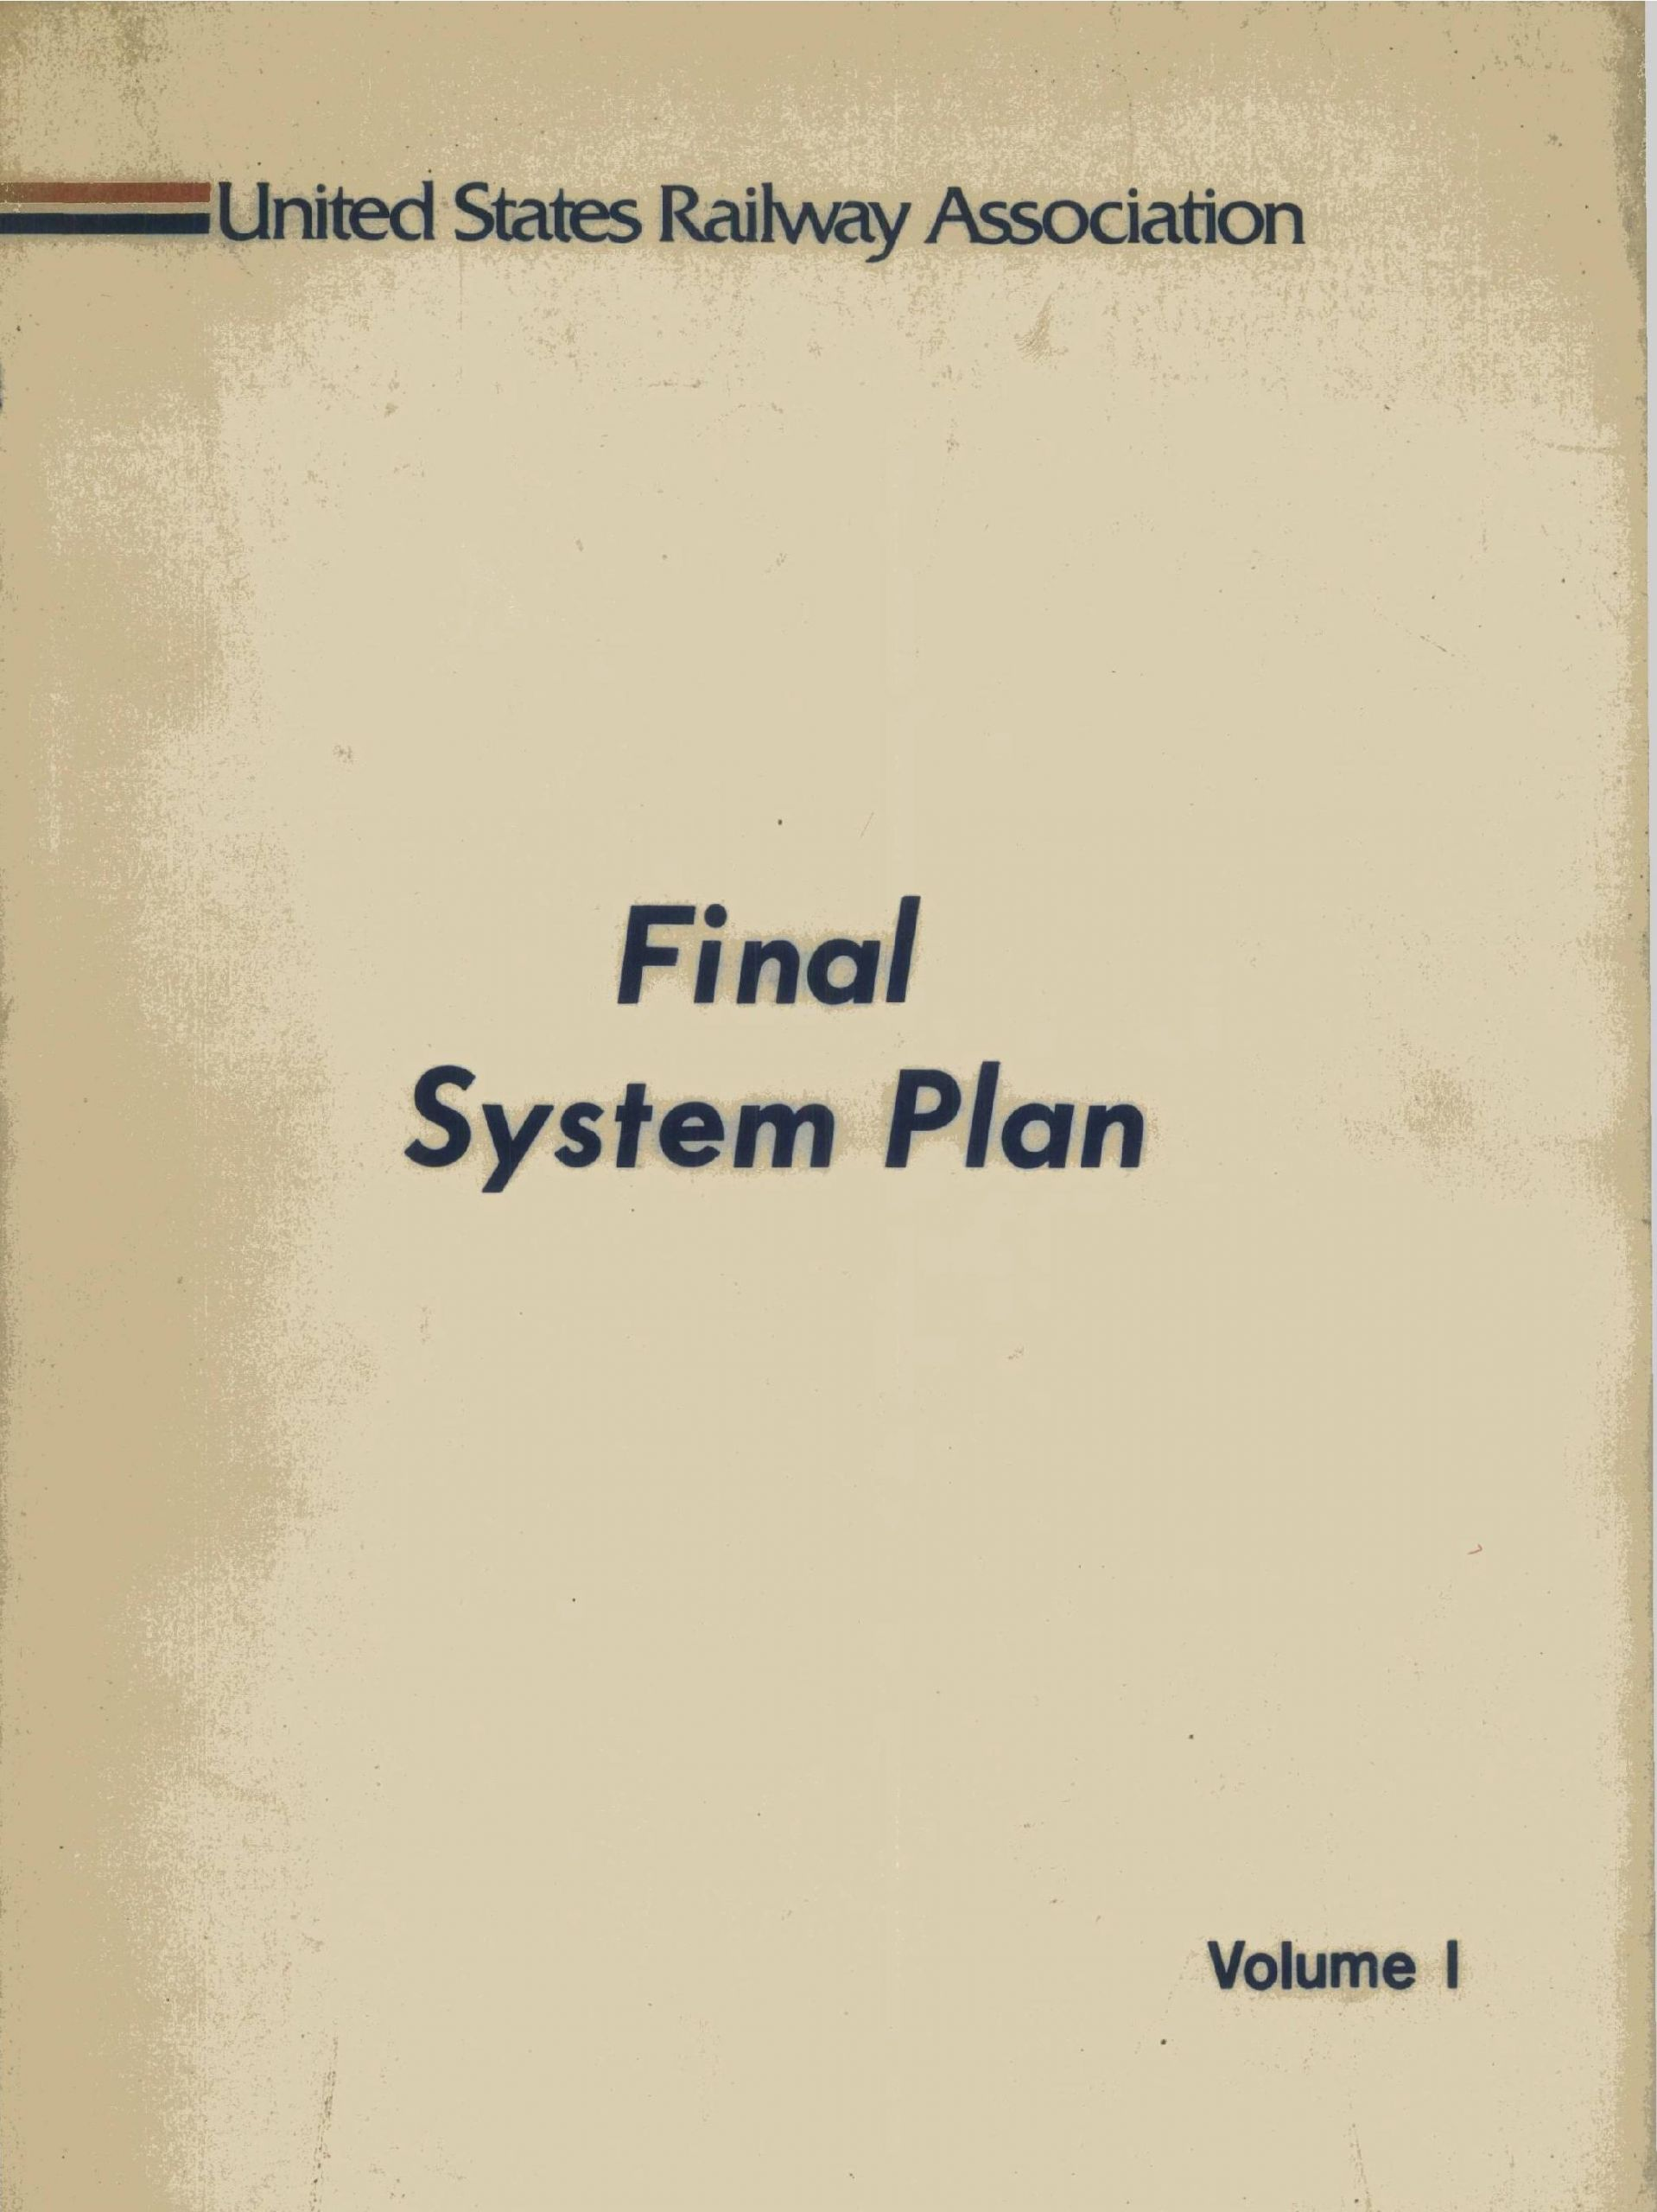 Barnum Brico Depot Nouveau Final System Plan Volume I by United States Railway Of 34 Beau Barnum Brico Depot